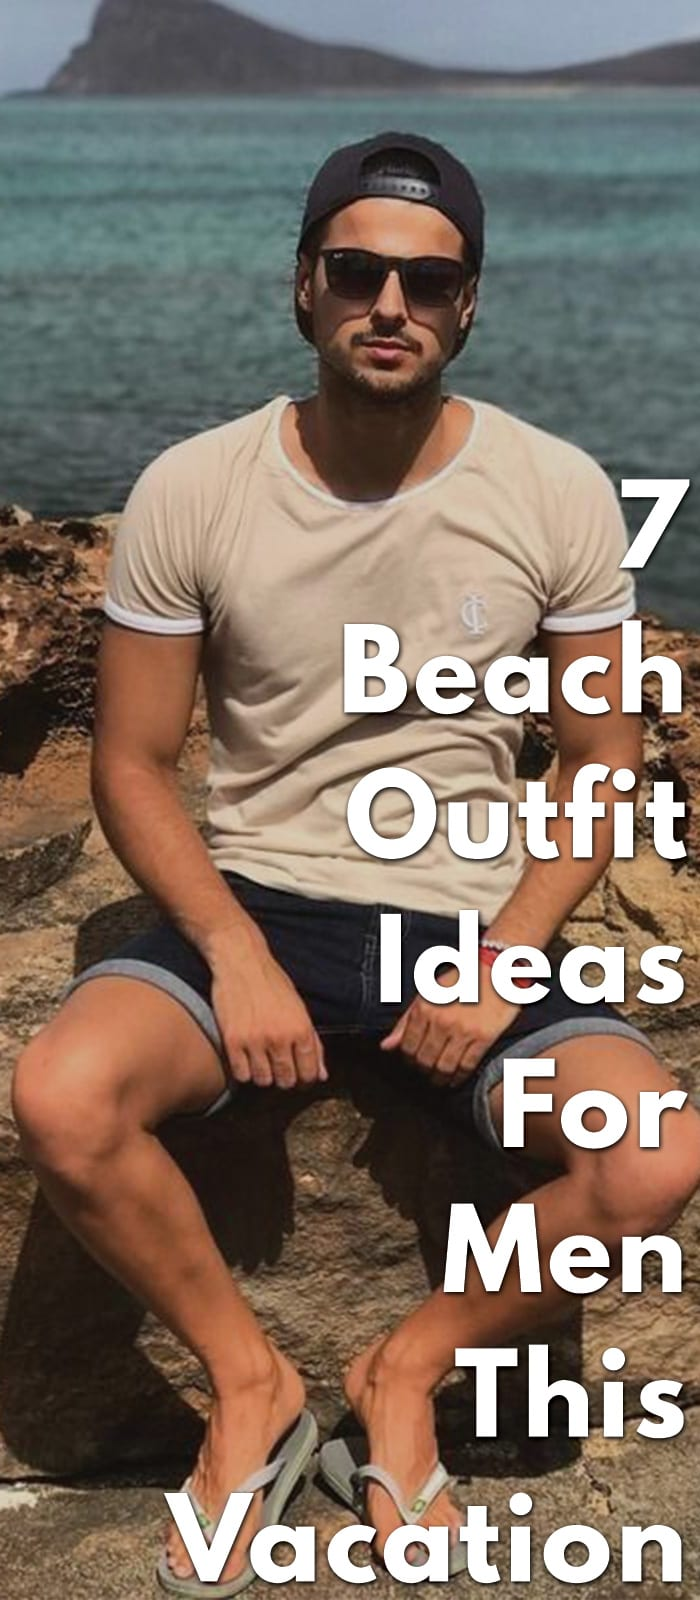 7-Beach-Outfit-Ideas-For-Men-This-Vacation...